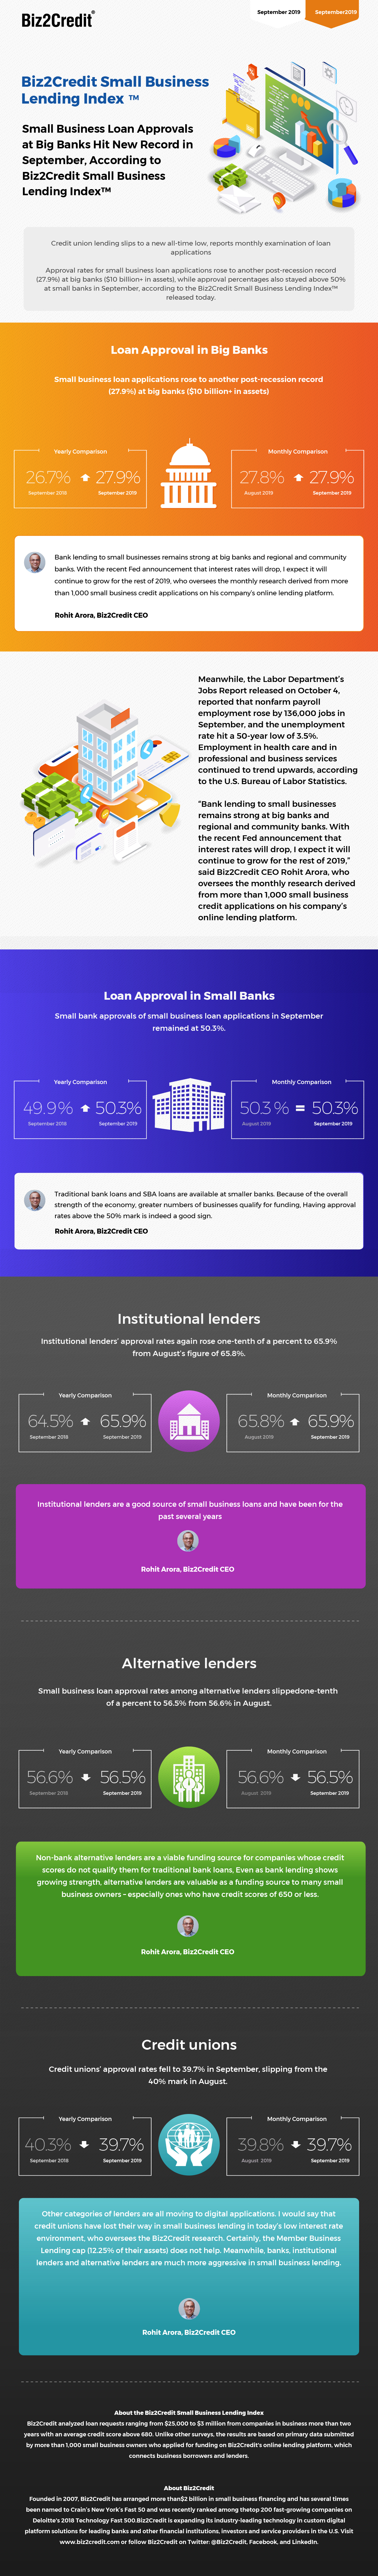 September 2019 Lending Index Infographic